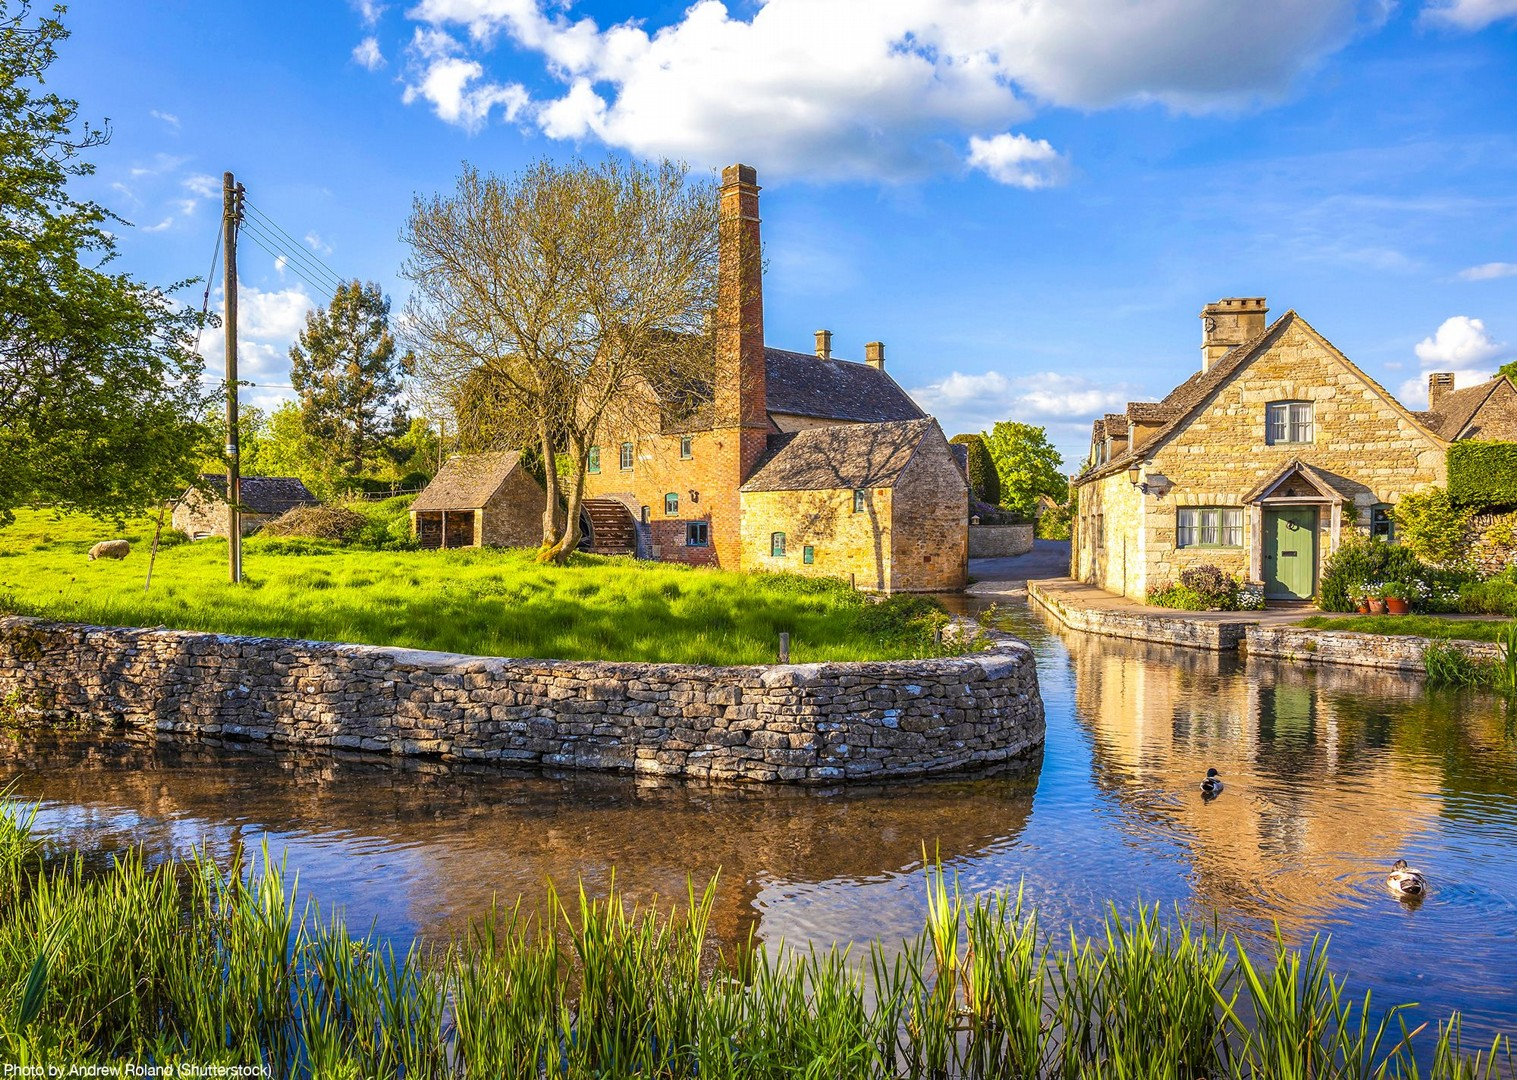 villages-south-uk-fun-family-friends-cycling-bike-holiday-tour-saddle-skedaddle.jpg - UK - Cotswolds - Bourton-on-the-Water - Guided Leisure Cycling Holiday - Leisure Cycling